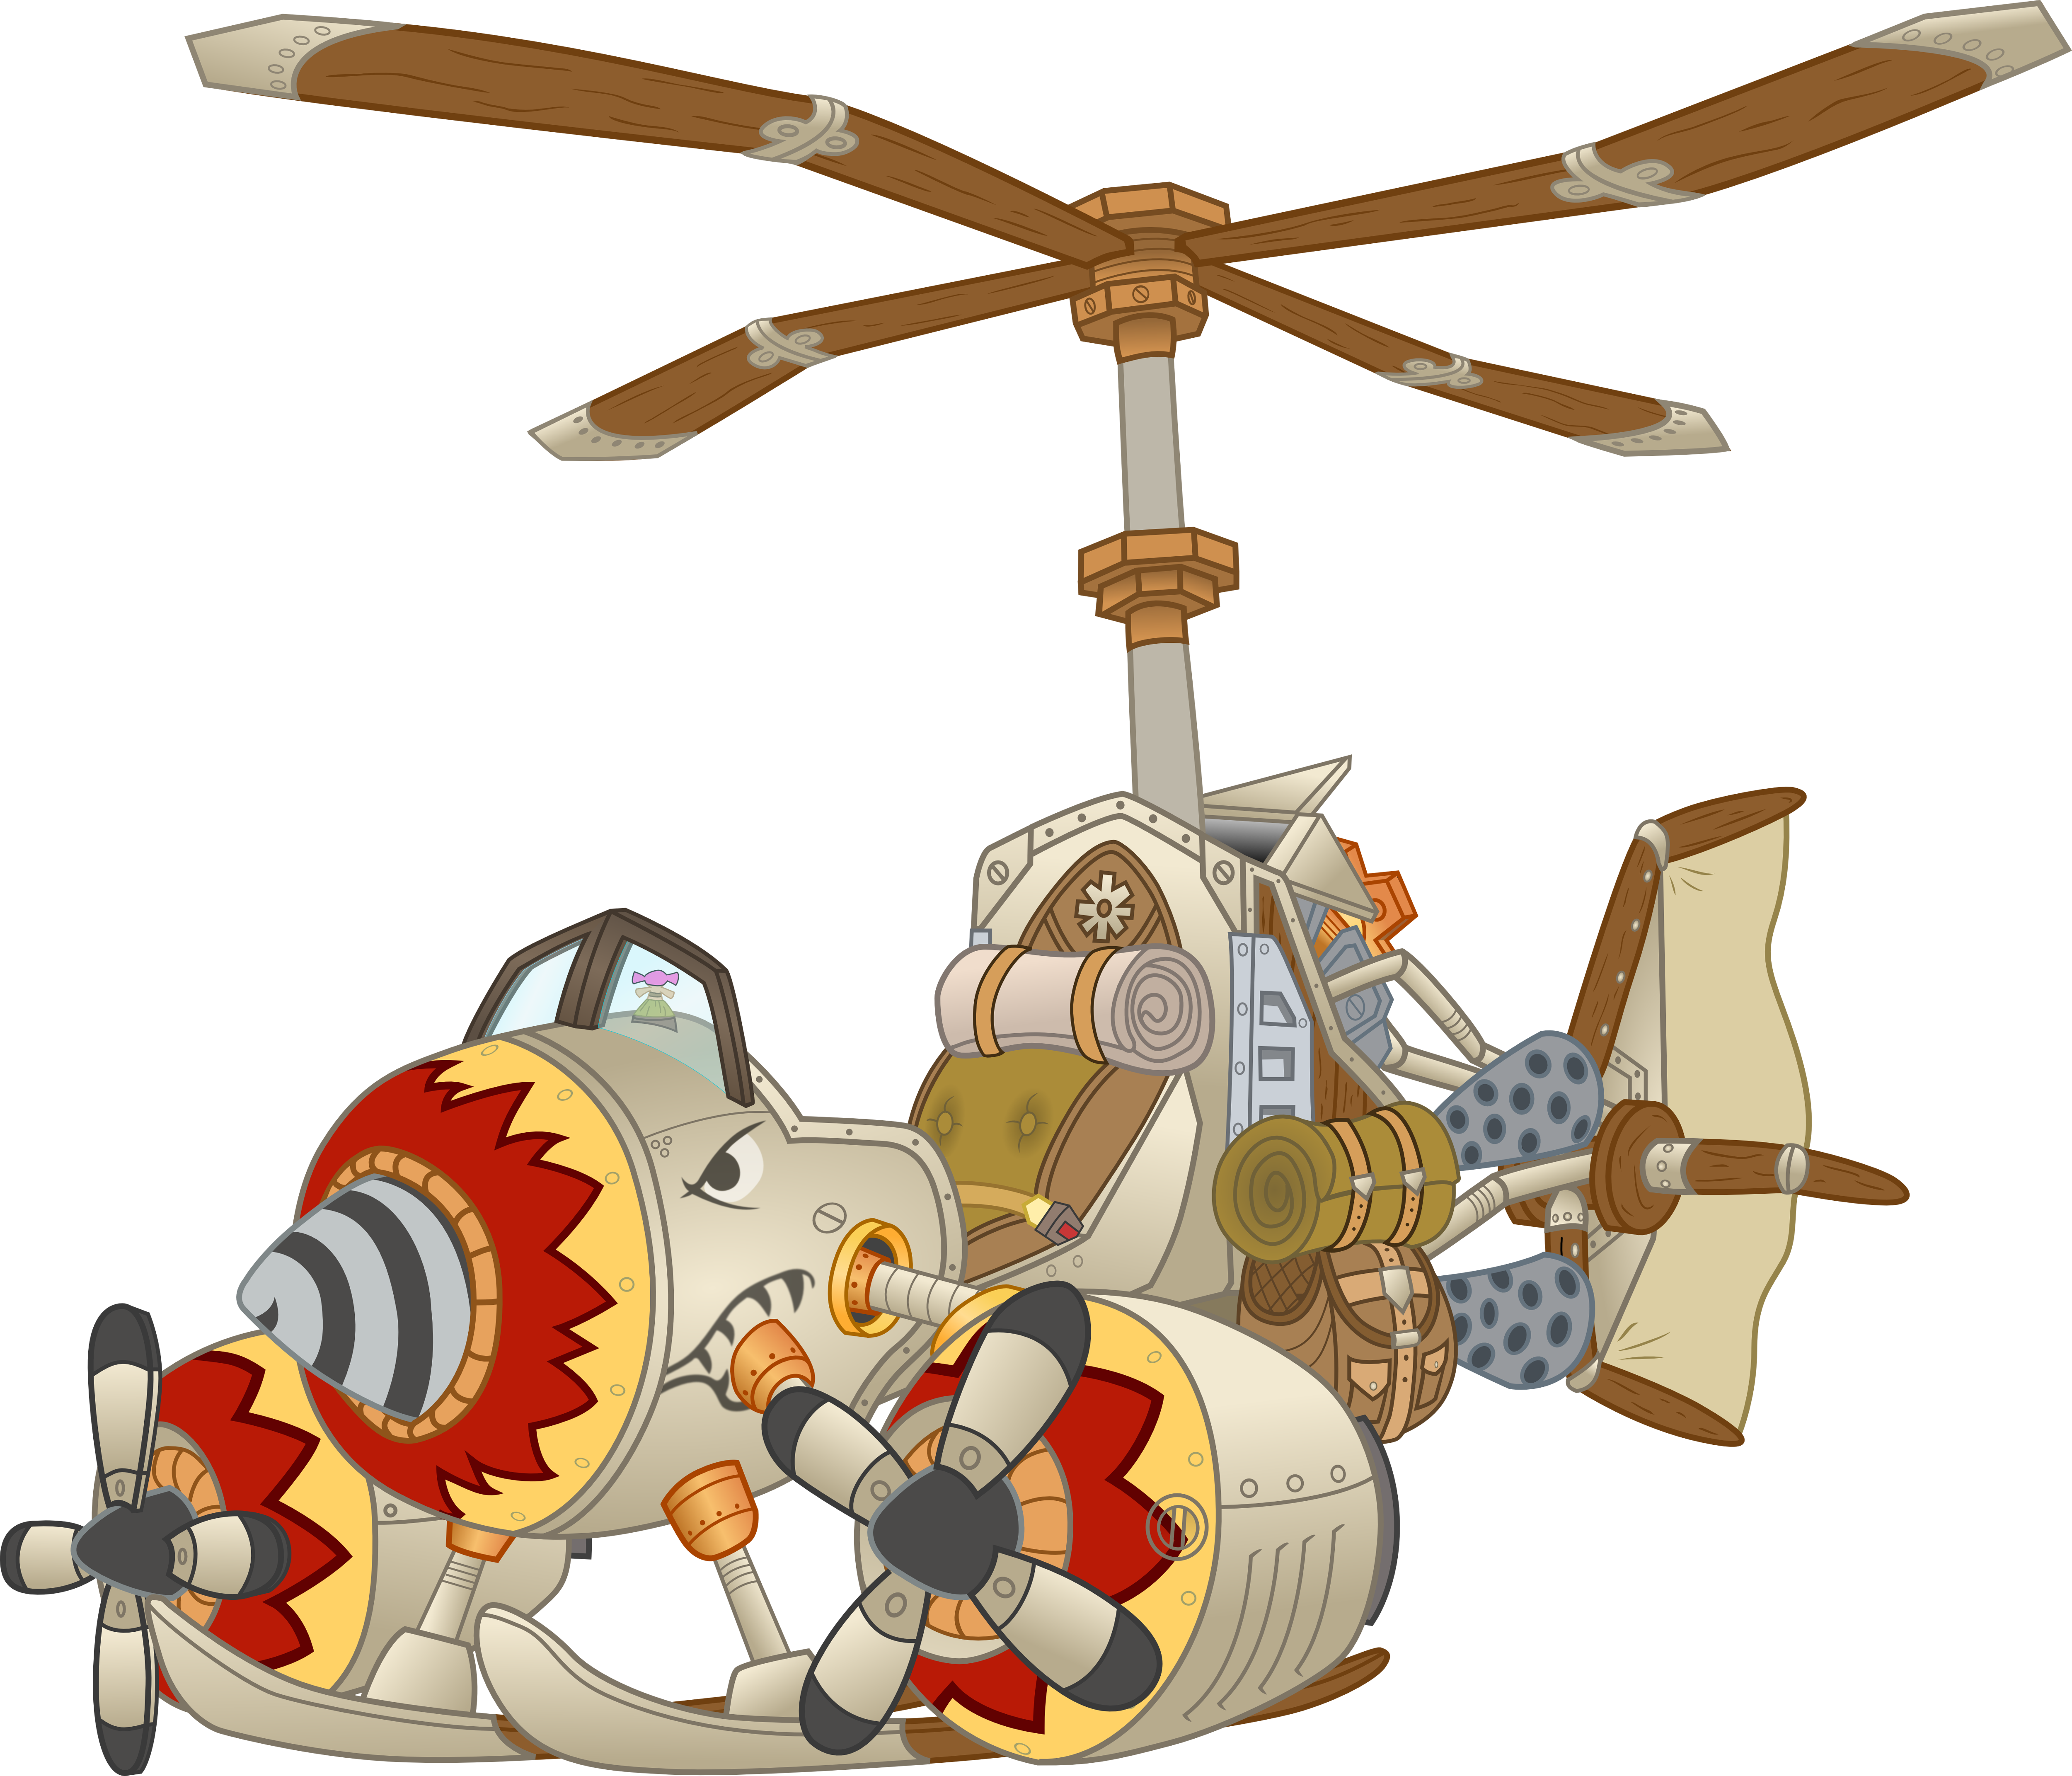 turbo charged flying machine